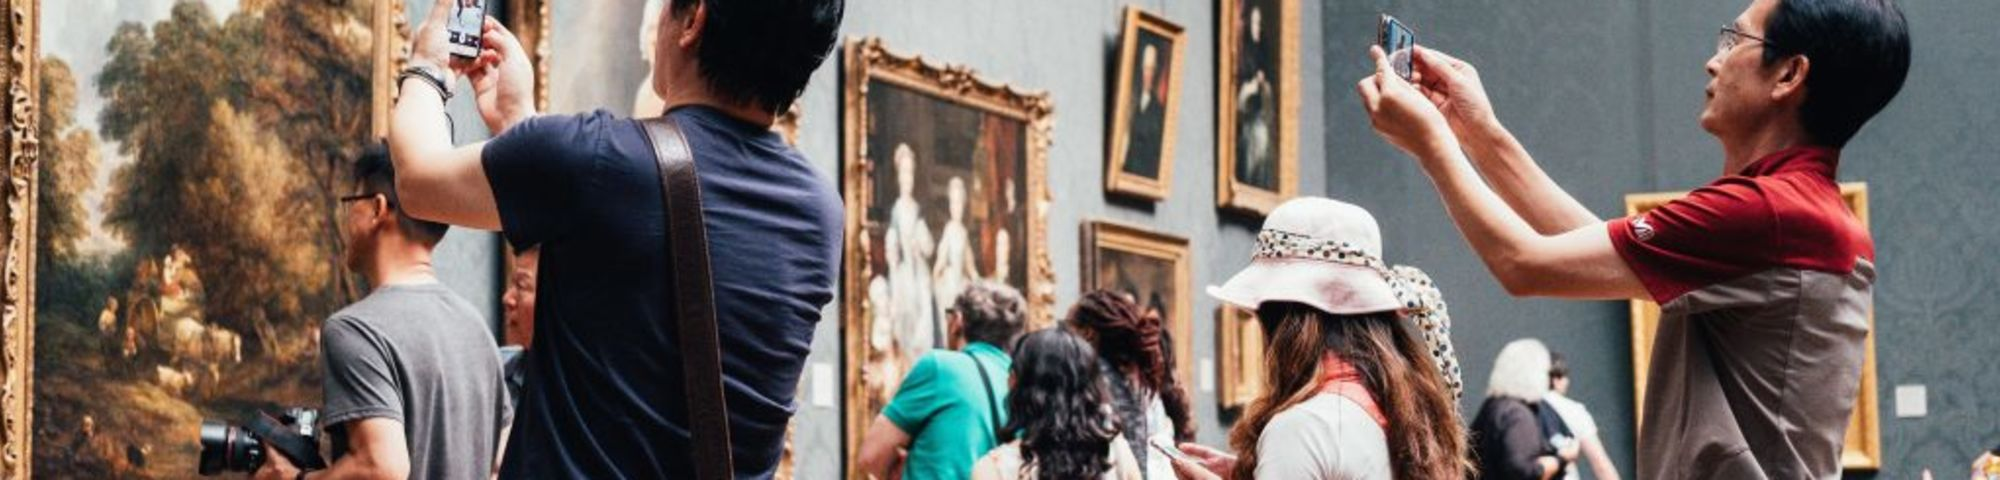 people photographing a painting in a museum